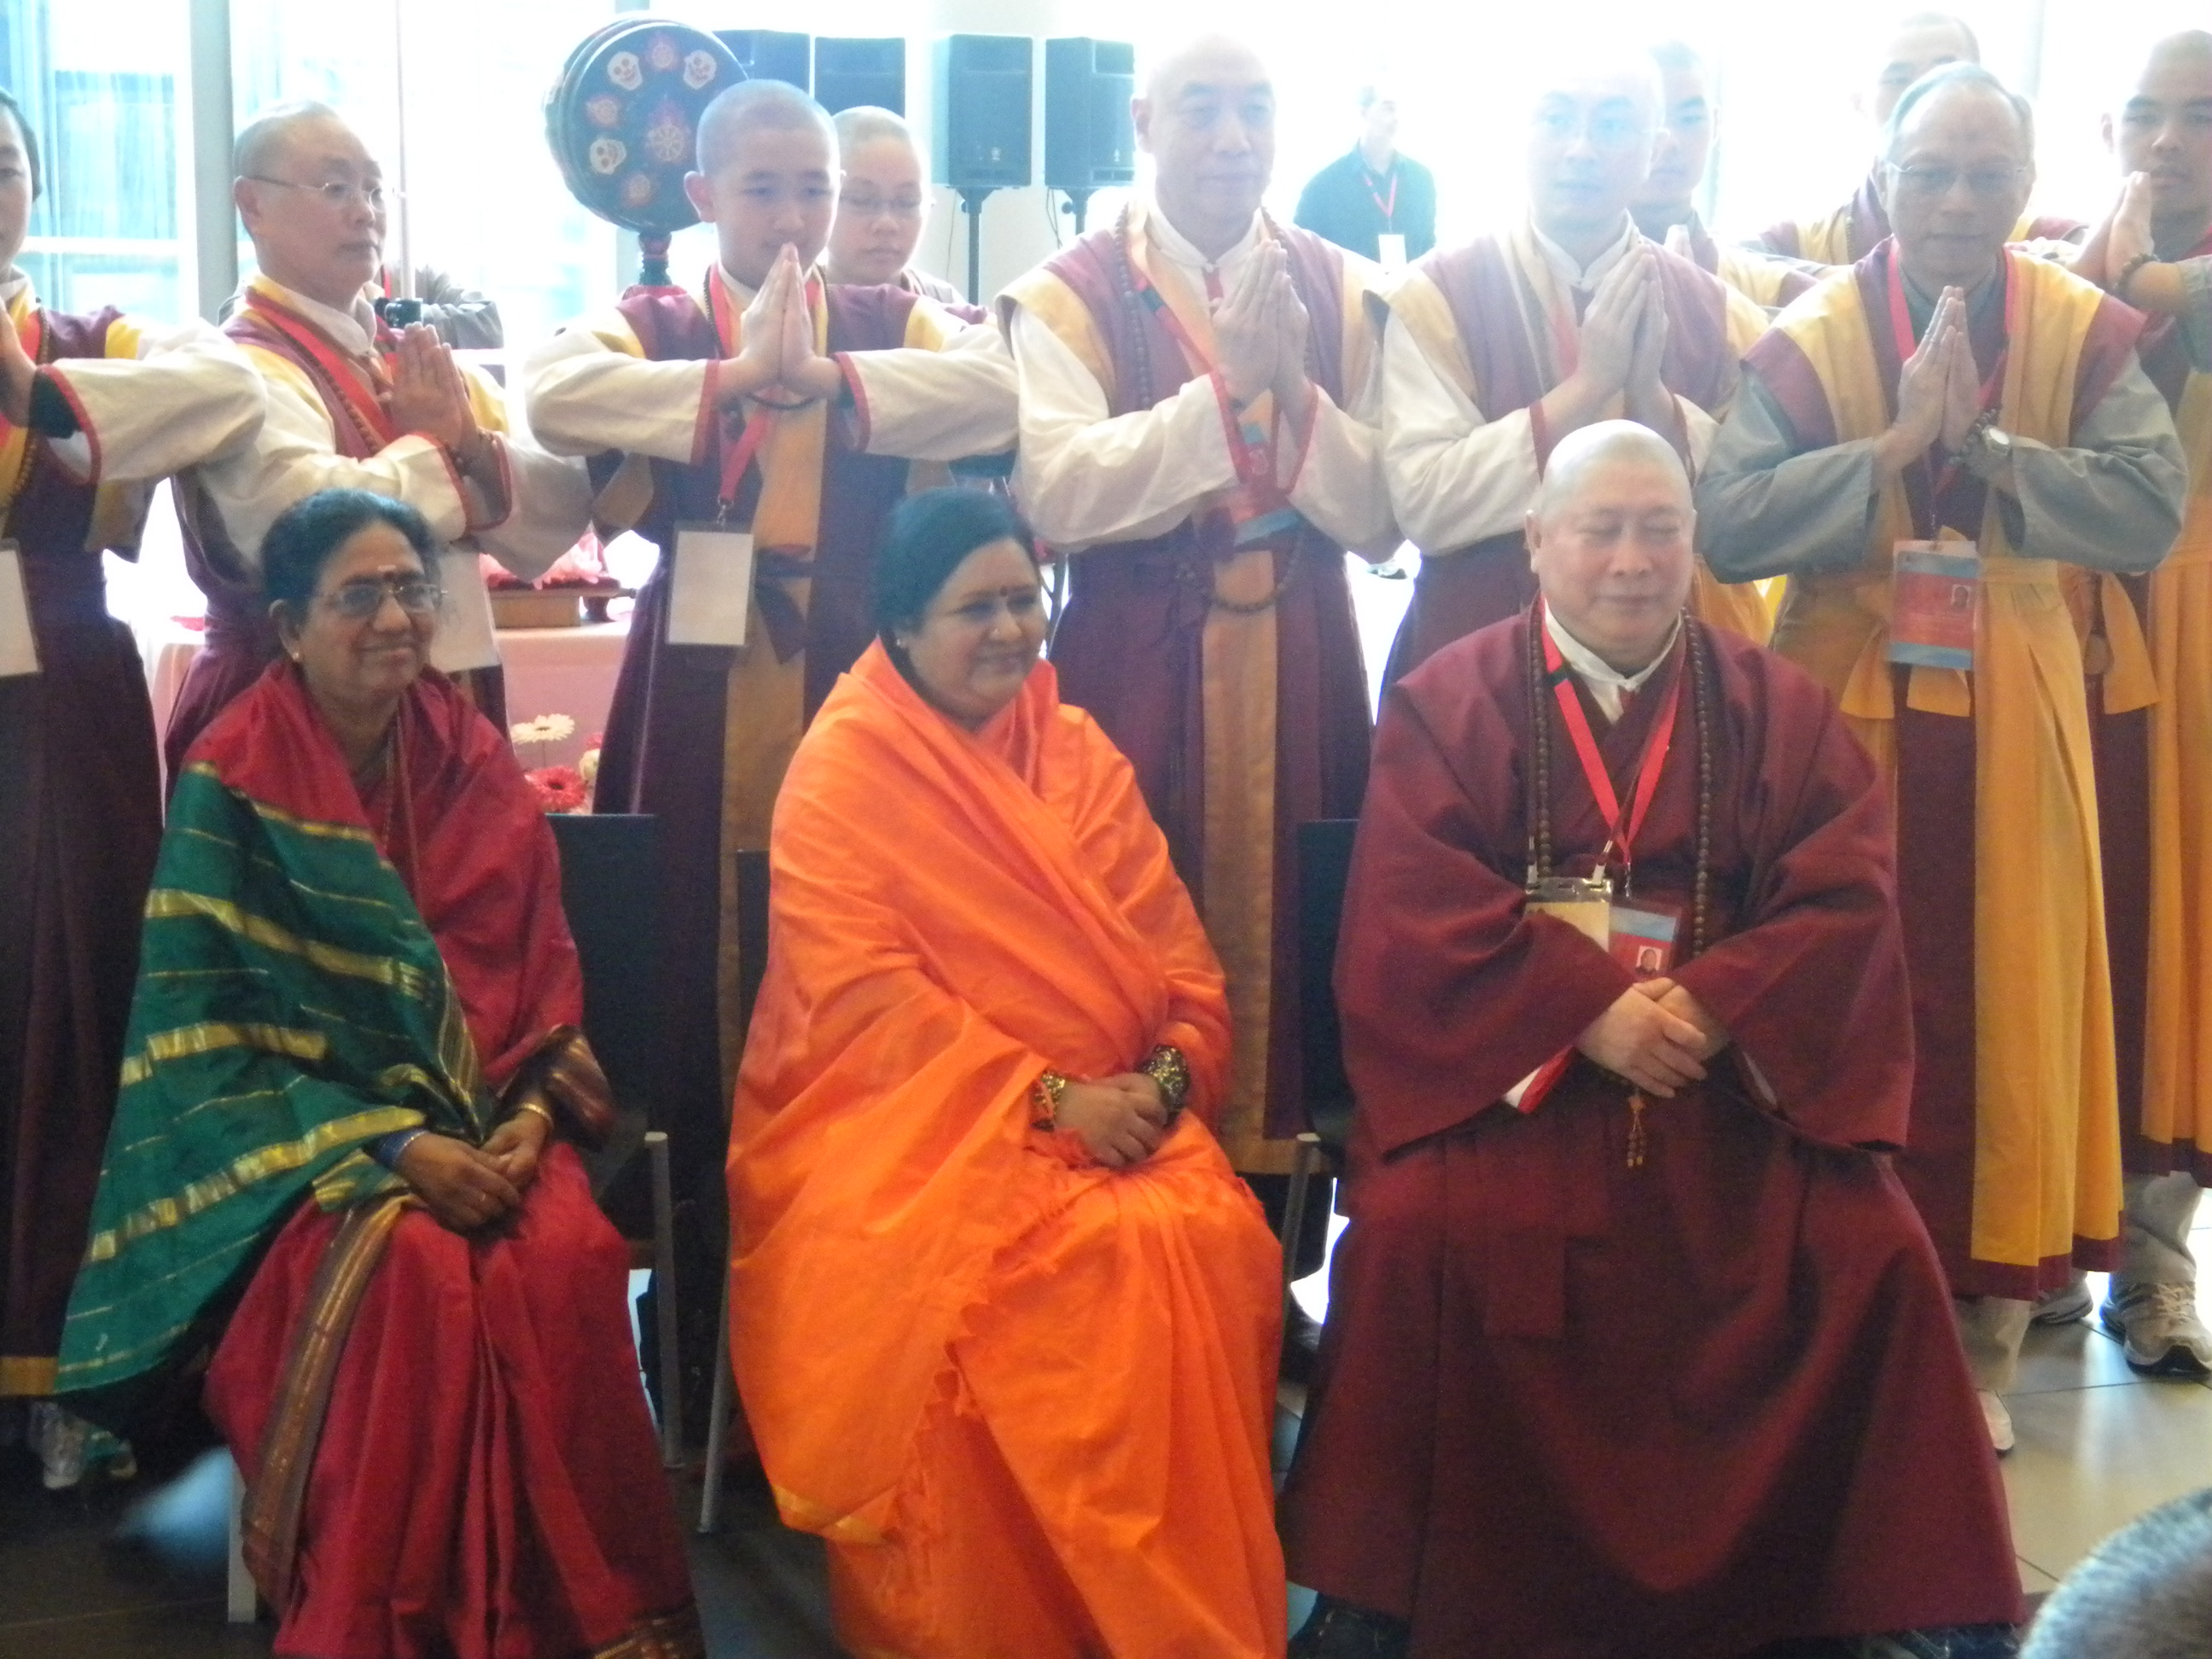 Taken by the author at the 2009 Parliament of the World's Religions in Melbourne, Australia.